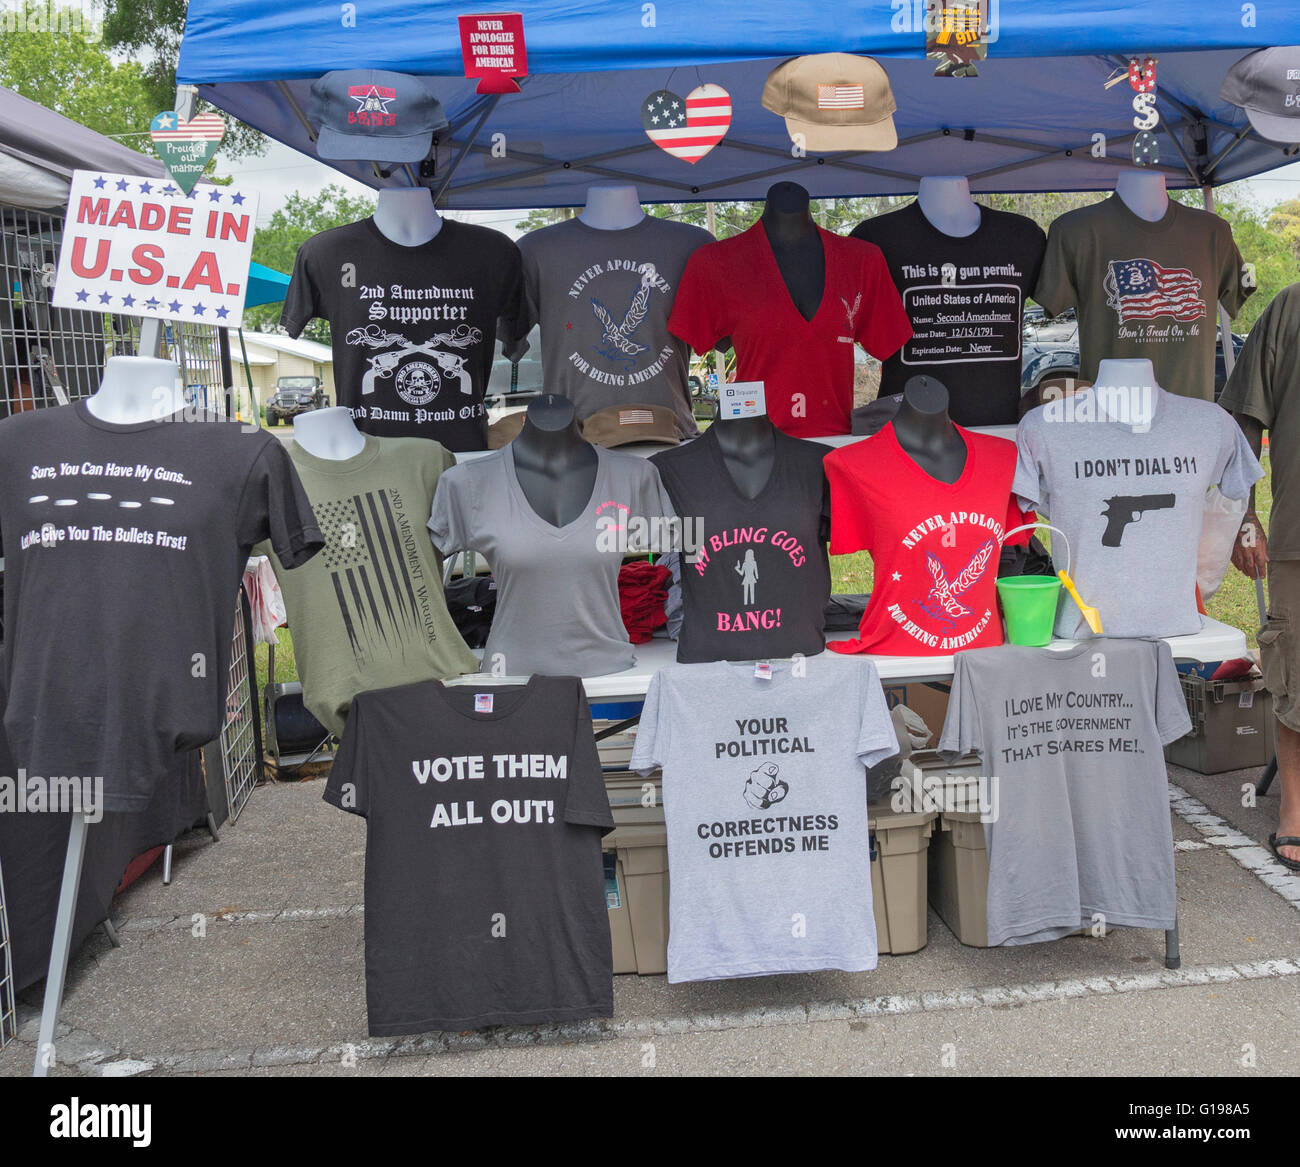 Pioneer Days annual celebration in High Springs Florida. Vendor selling non-politically correct T-shirts. - Stock Image